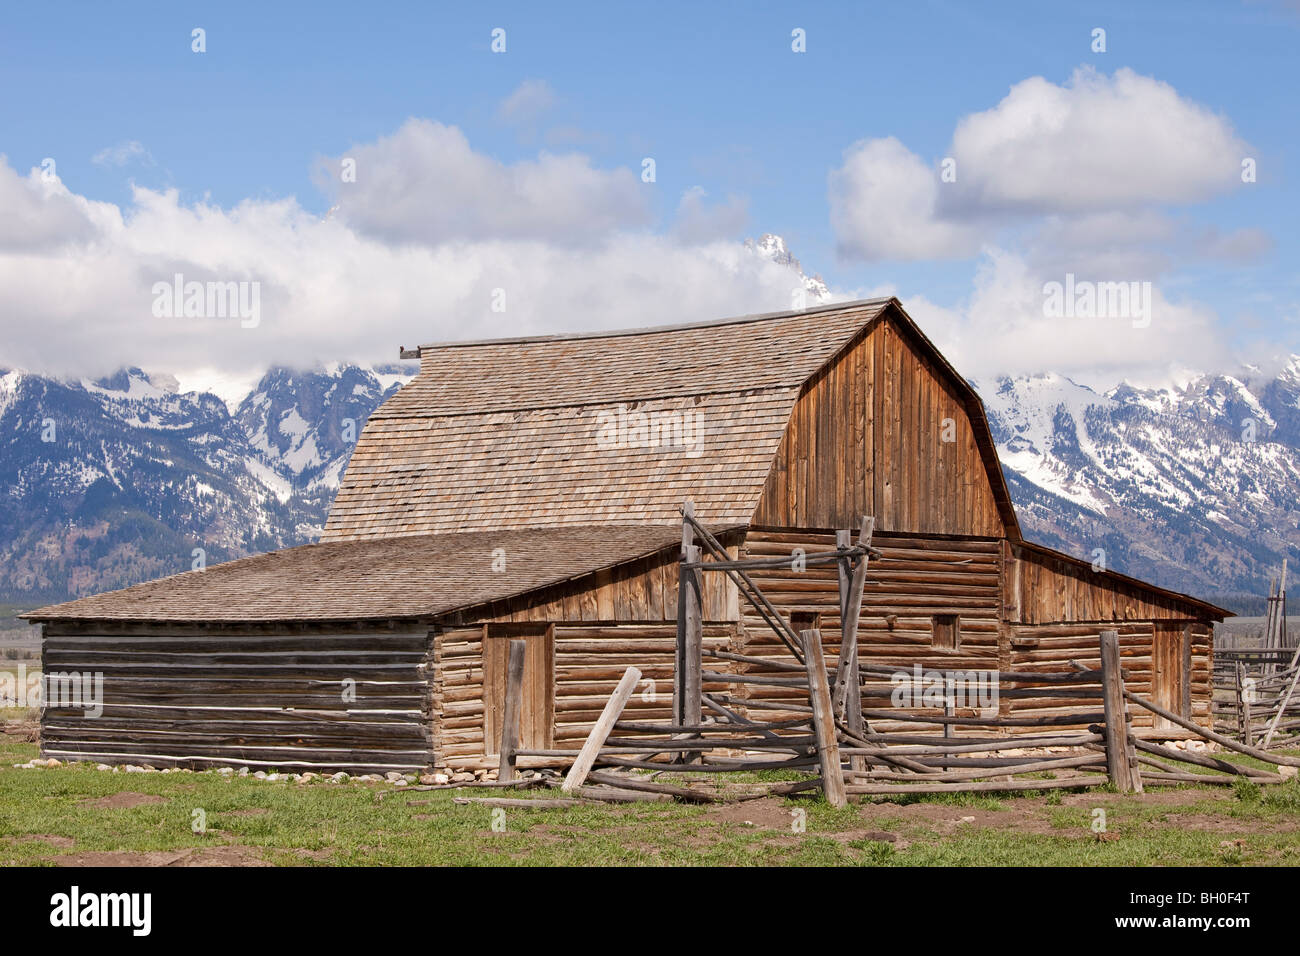 Historic Moulton Barn on 'Mormon Row' off Antelope Flats Road near Moose Junction, Wyoming, USA. - Stock Image